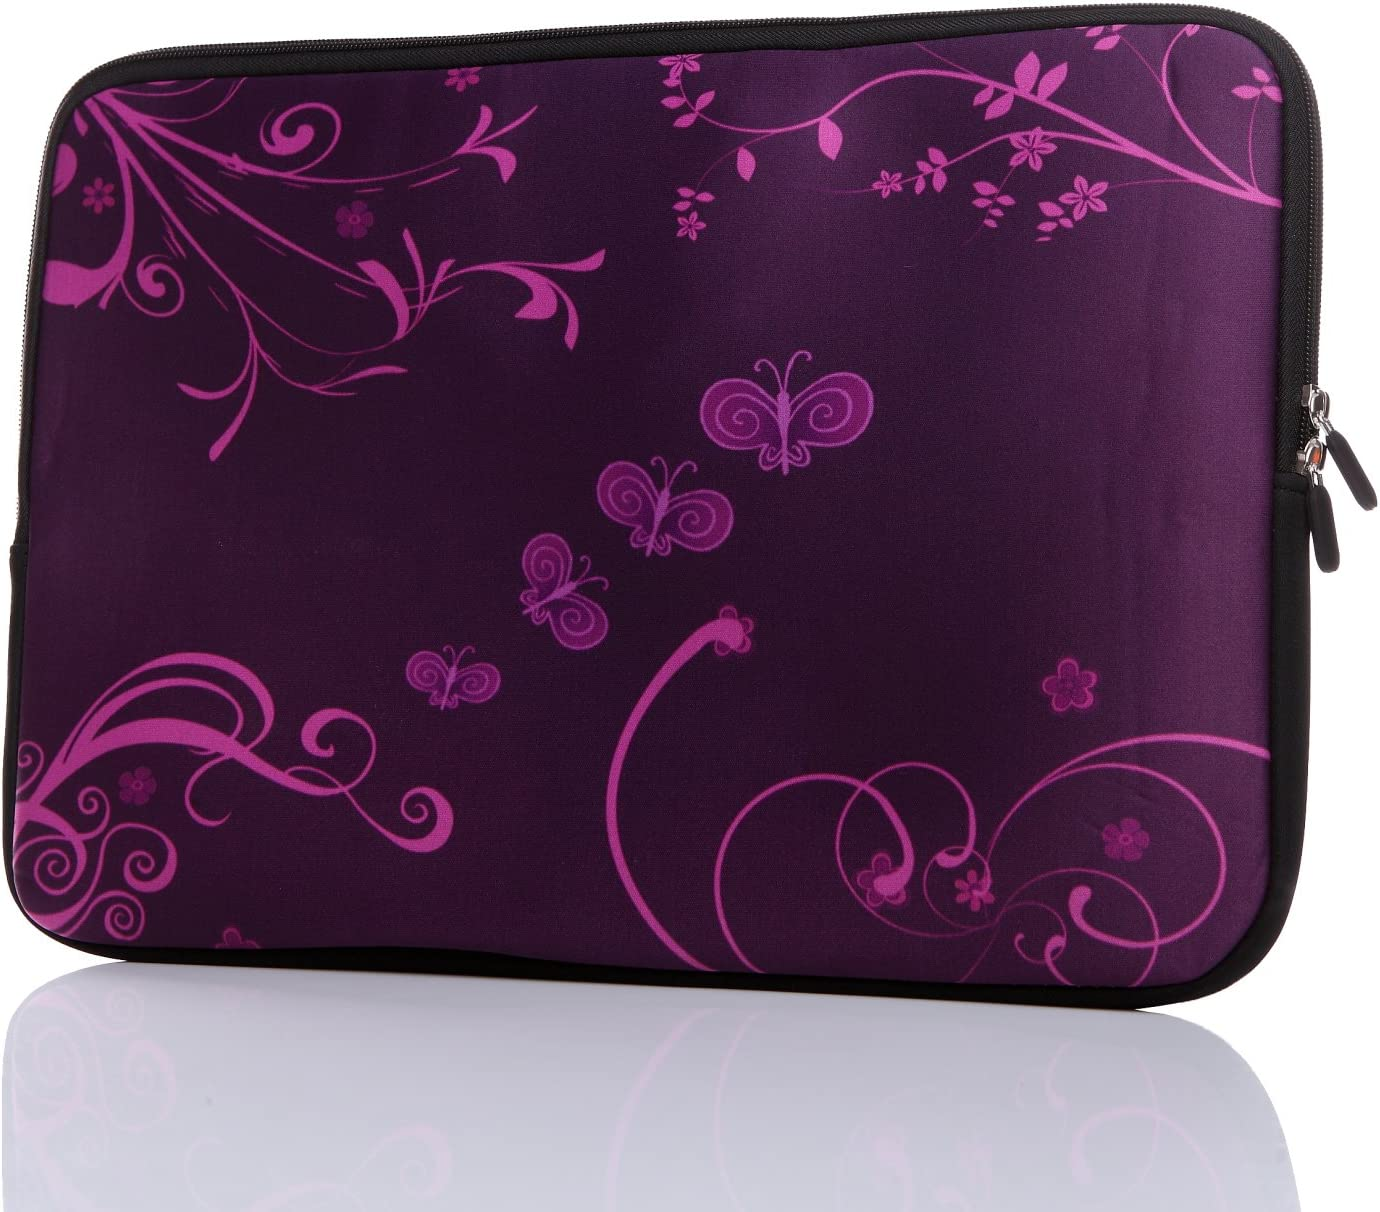 "13.3-Inch to 14-Inch Laptop Neoprene Sleeve Case with Hidden Handle for 12.9 13 13.3 14 14.1"" Inch Men Women Ultrabook/Chromebook/Tablet/Netbook (13.3-14 Inch, Purple Butterfly)"